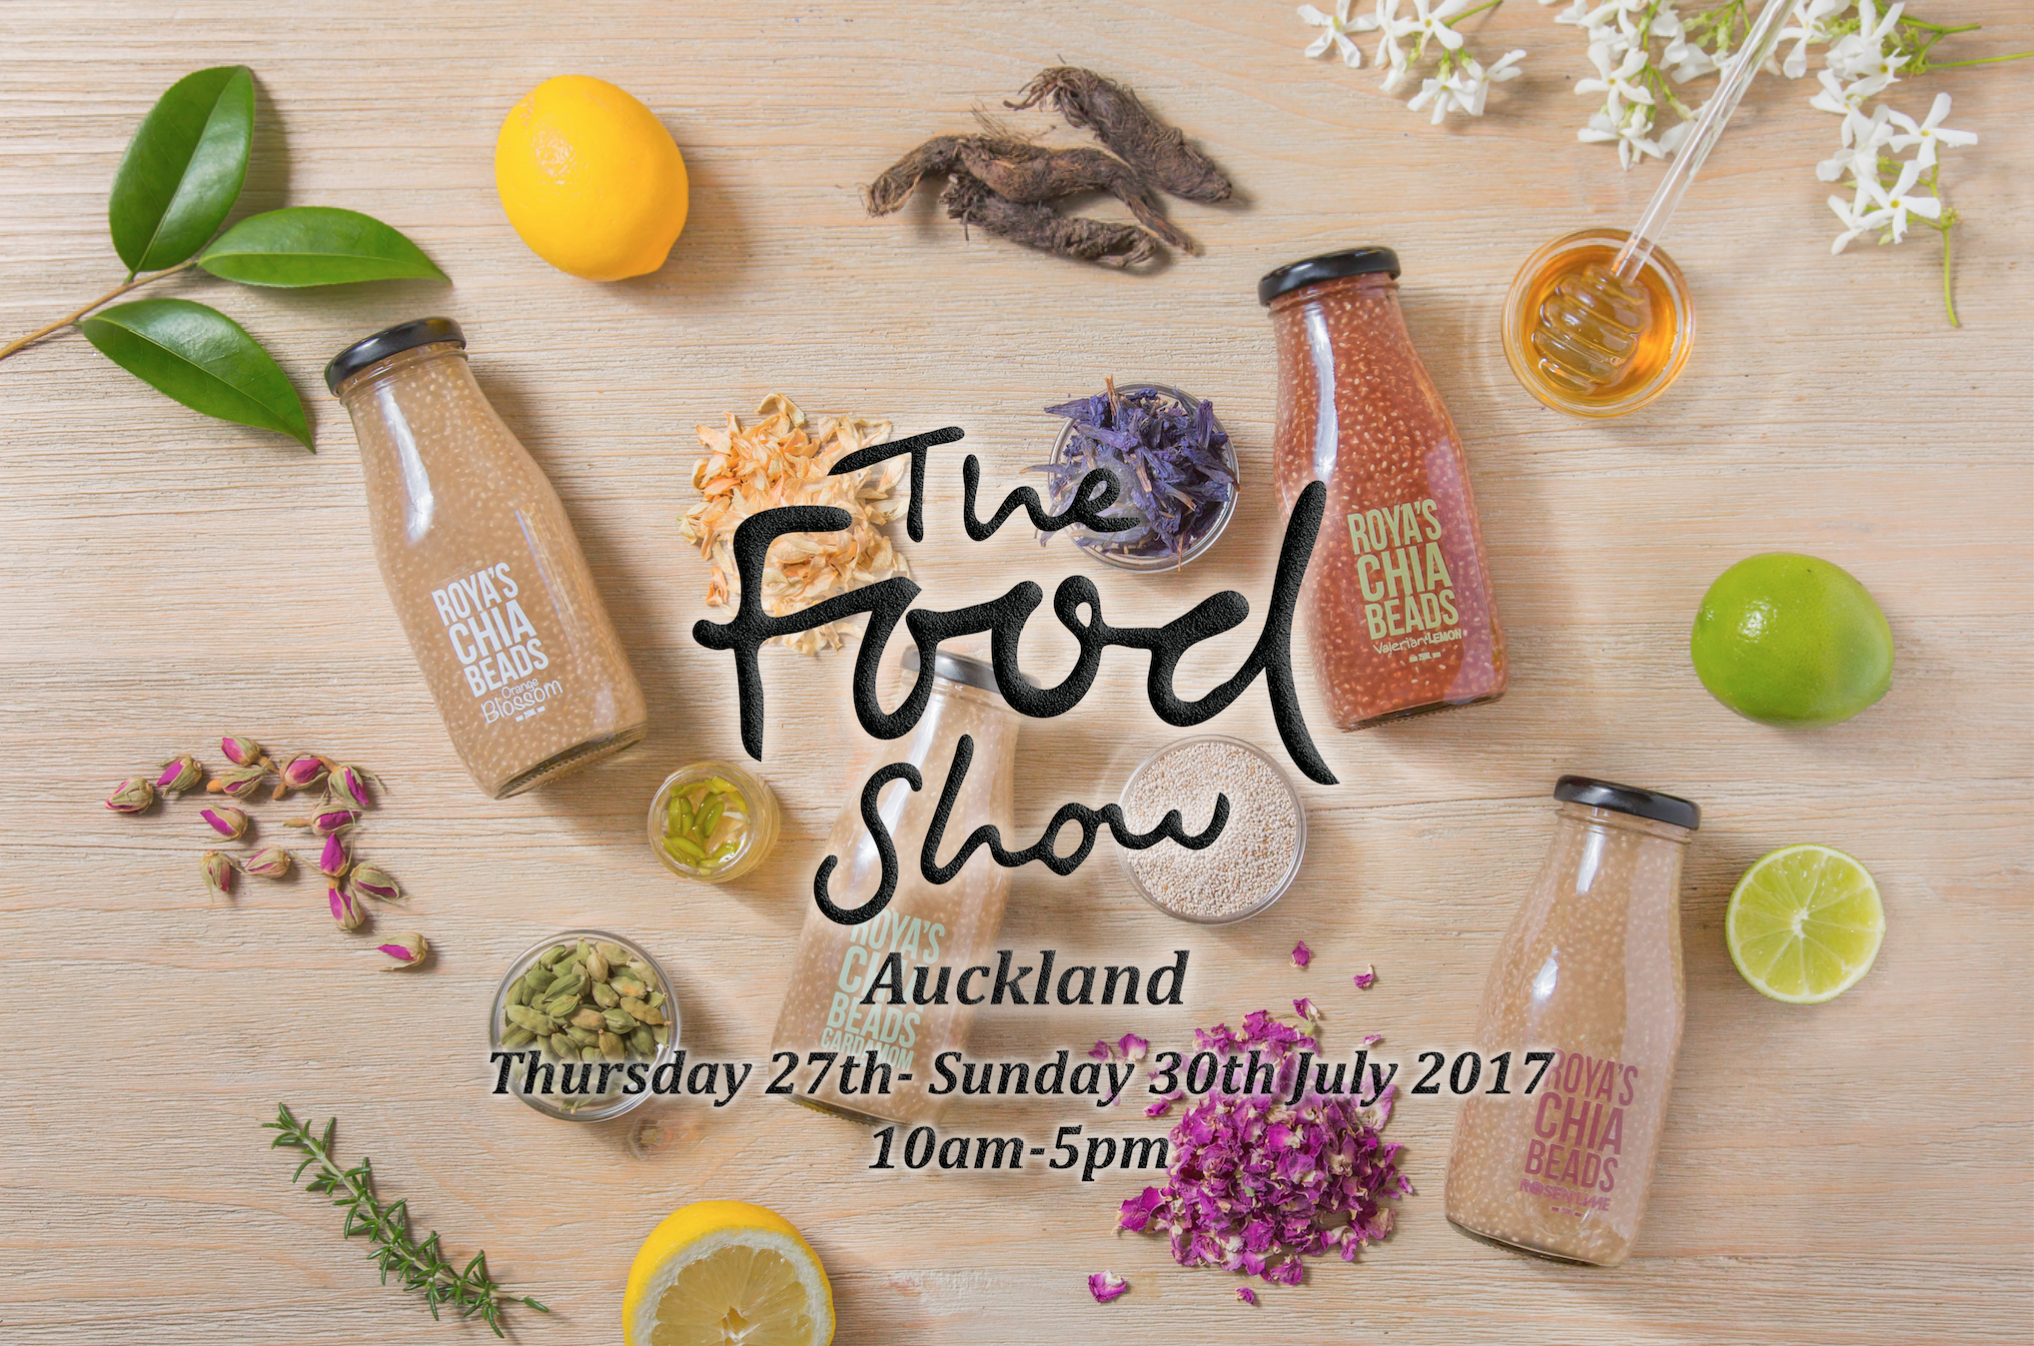 The Roya's Chia beads team are going to be at the  Auckland Food Show 2017 !  We are stationed at  stall number A9 in the main hall .  Come say Hi and try our delicious flavours!